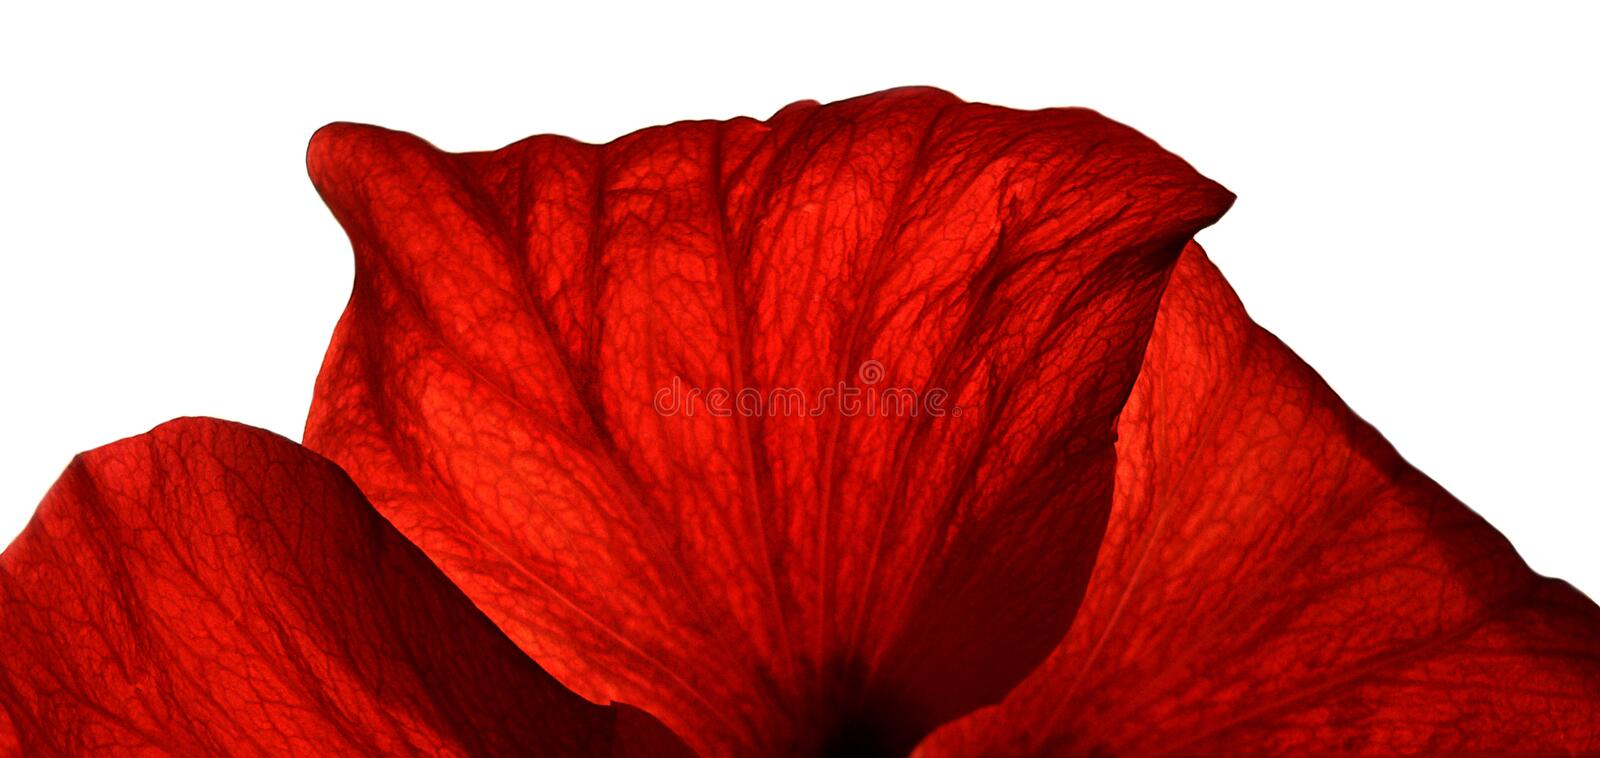 Download Red Petals stock photo. Image of detail, appeal, circle - 183666